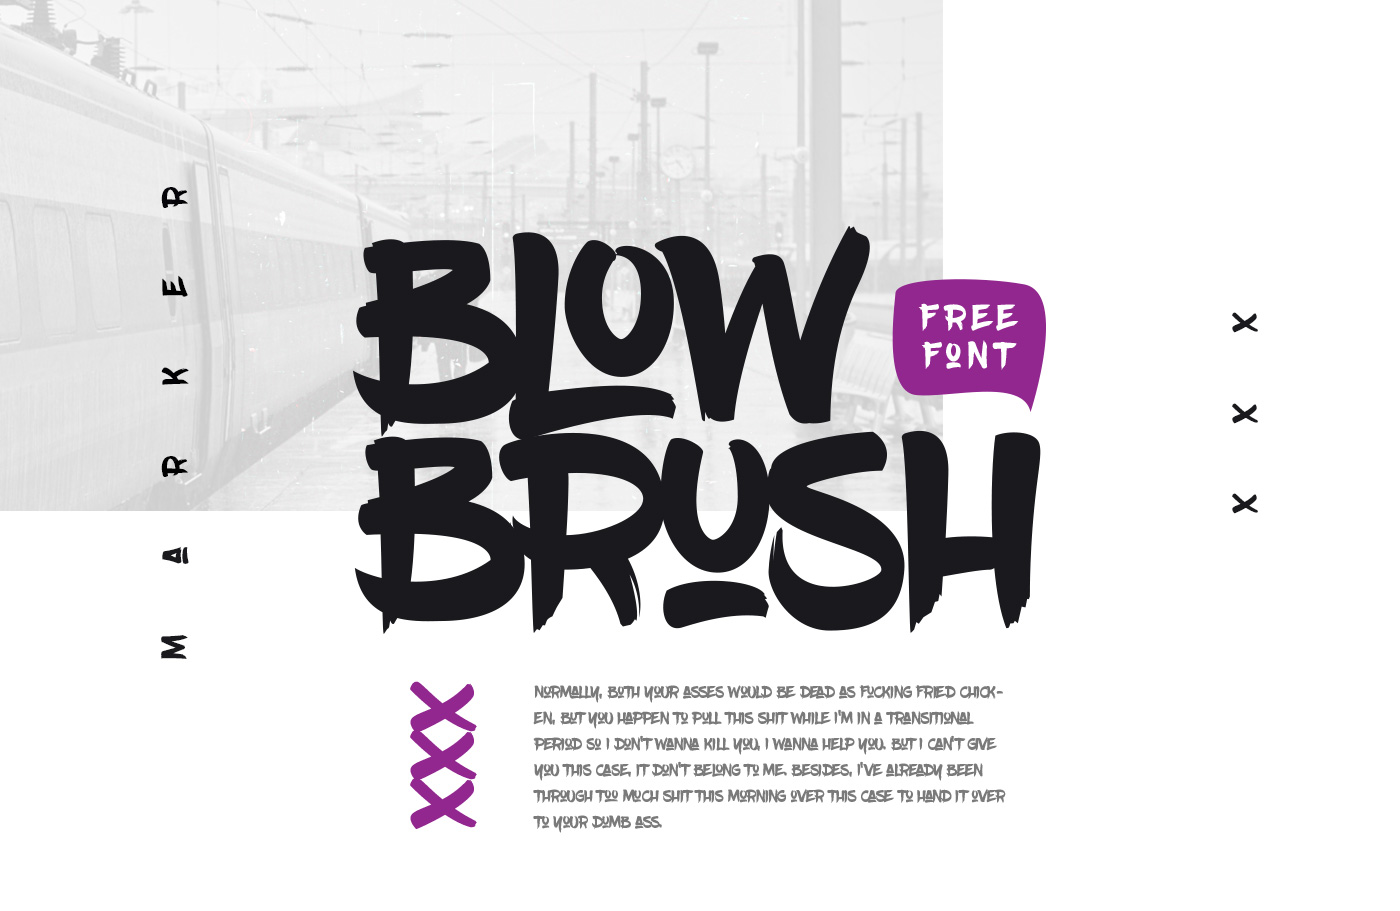 21 Free Fonts to download